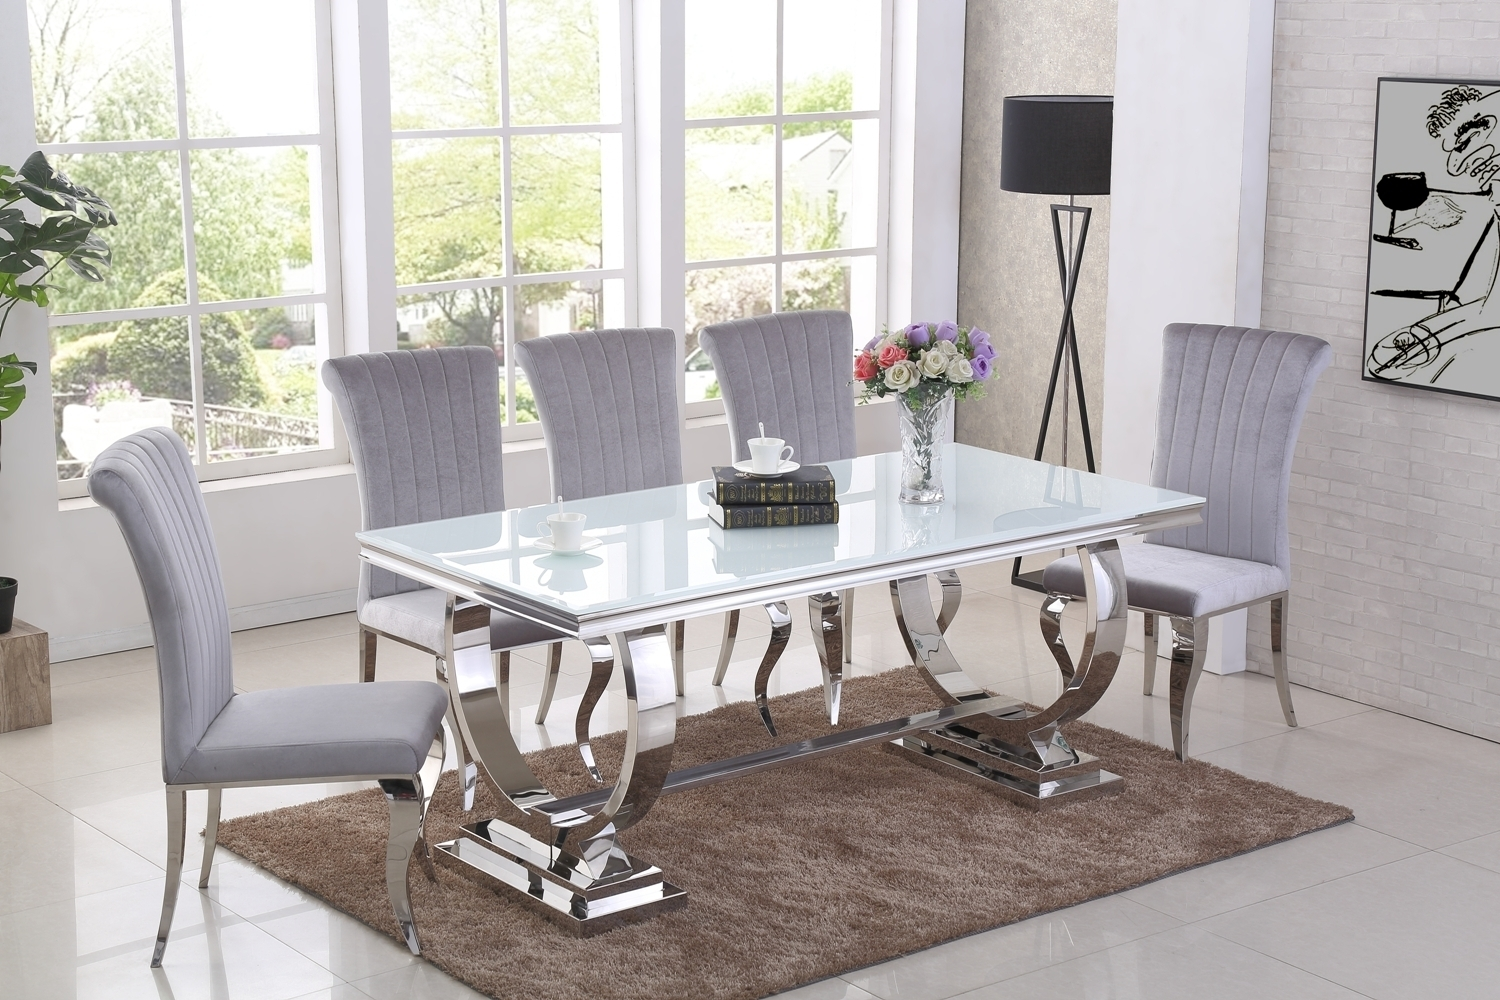 Full_chrome_and_white_glass_dining_table_and_6_grey_velvet_chairs